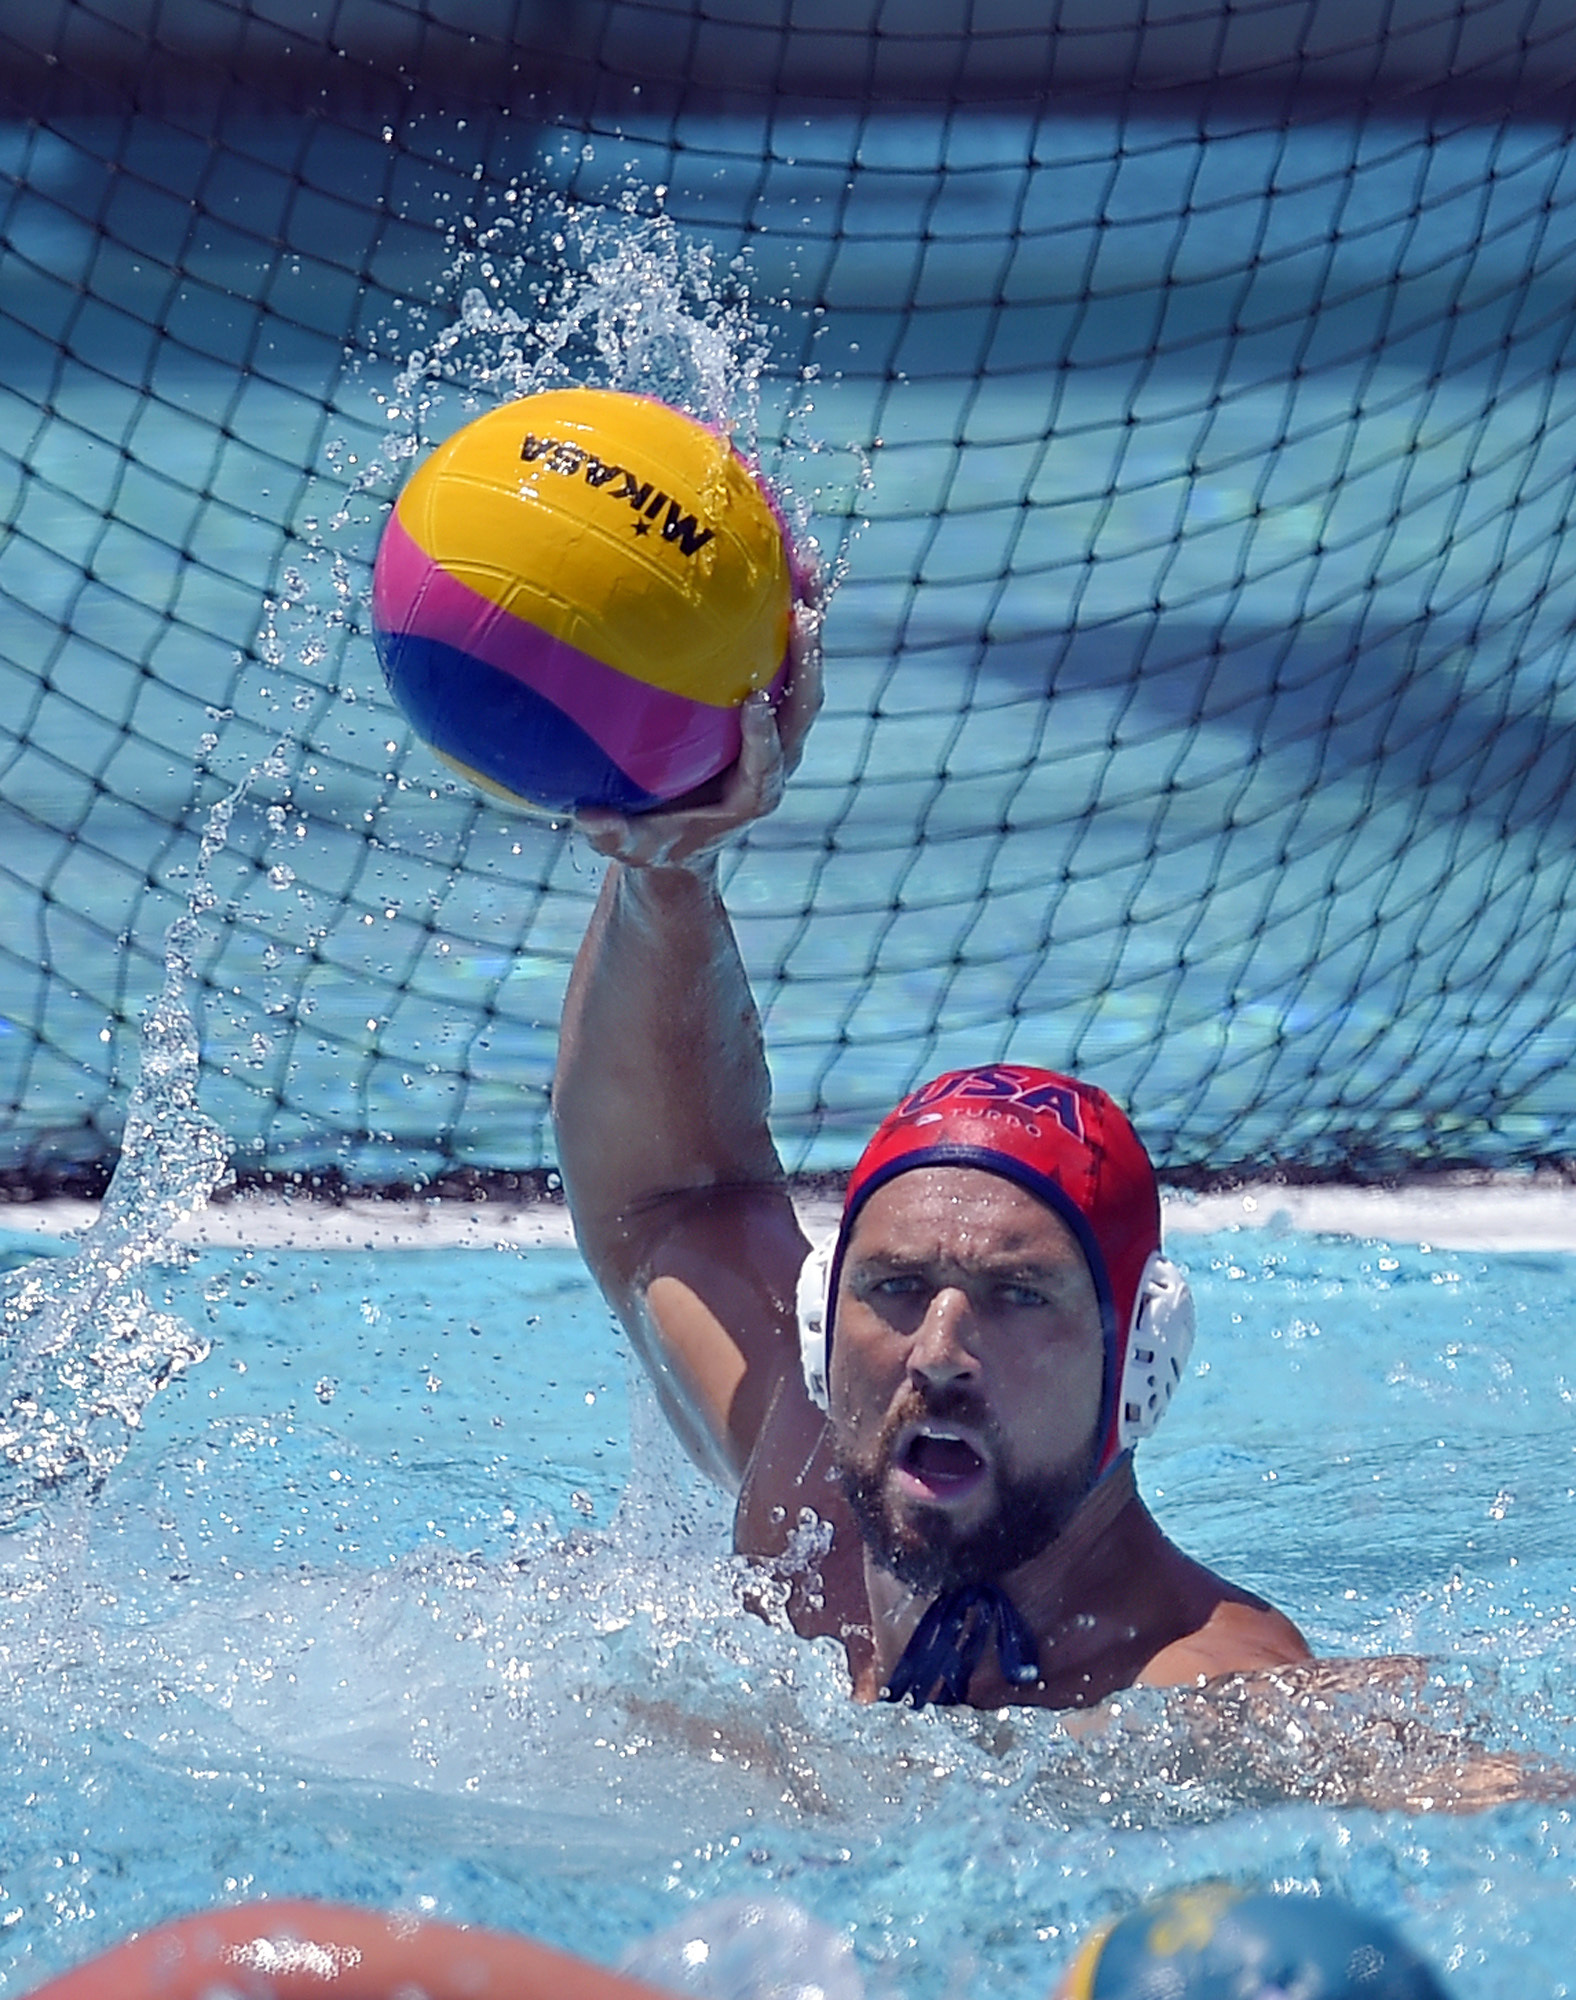 FILE - In this May 22, 2016, file photo, United States goalkeeper Merrill Moses passes the ball during a men's exhibition water polo match against Australia in Los Angeles. Terry Schroeder knows a lot of Merrill Moses stories. One of Schroeder's favorite